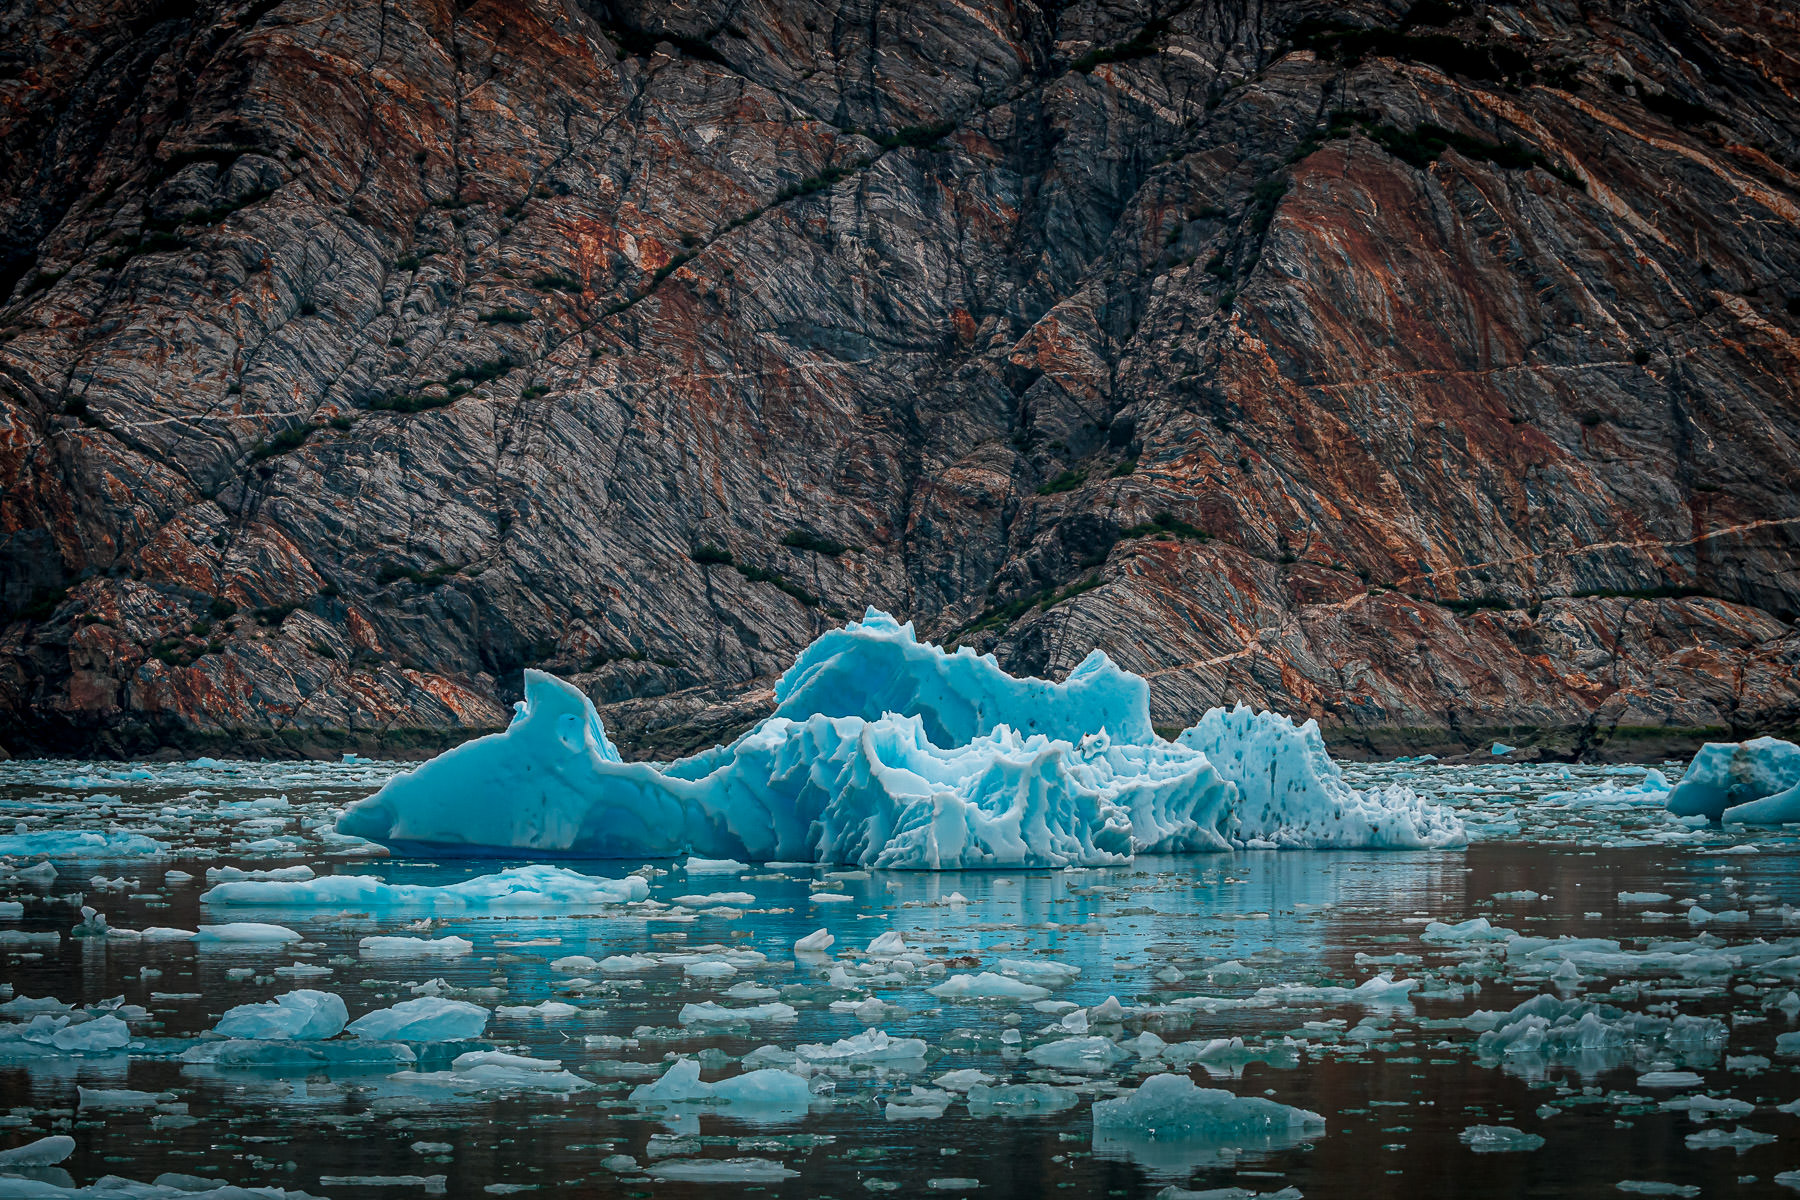 Ice floes float in Alaska's Tracy Arm Fjord.